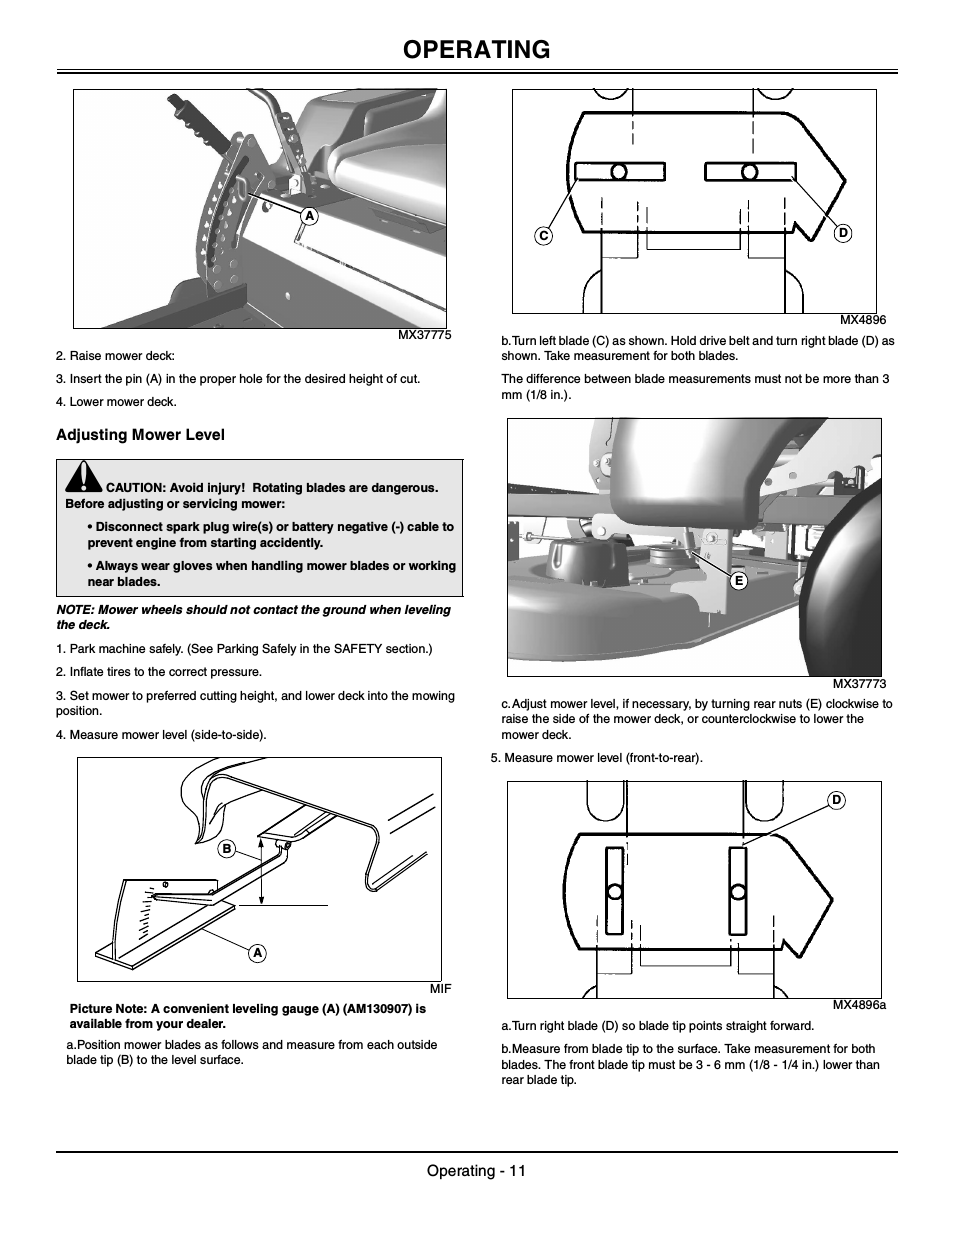 John Deere 425 Mower Deck Manual | John Deere Manuals: John ... on